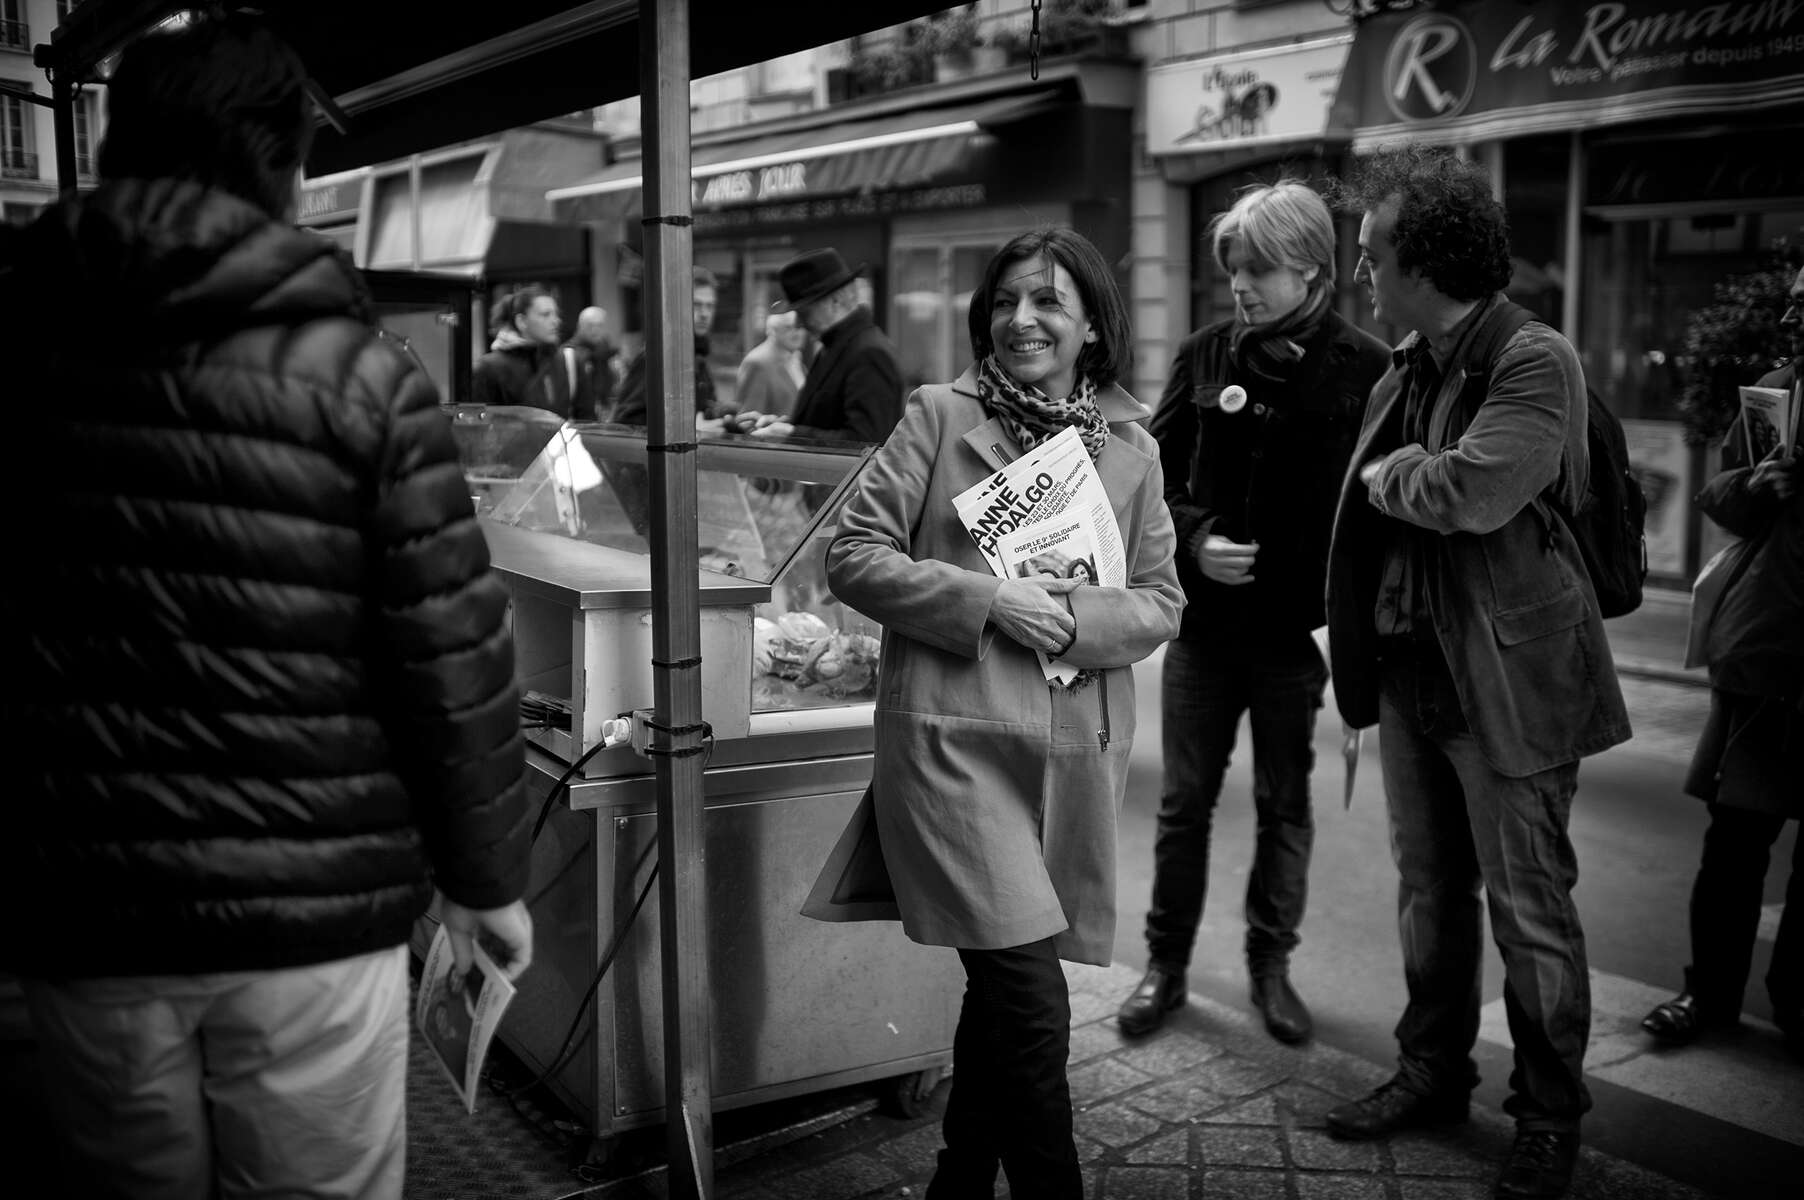 March 15, 2014.  PARIS, FRANCE- Mayoral candidate Anne Hidalgo chats with potential voters in Paris' 9th Arrondissement.  For the first time in France's history, Paris will have a woman as a mayor - either Socialist Anne Hidalgo or Center-Right Nathalie Kosciusko-Morizet.  Photo by Scout Tufankjian